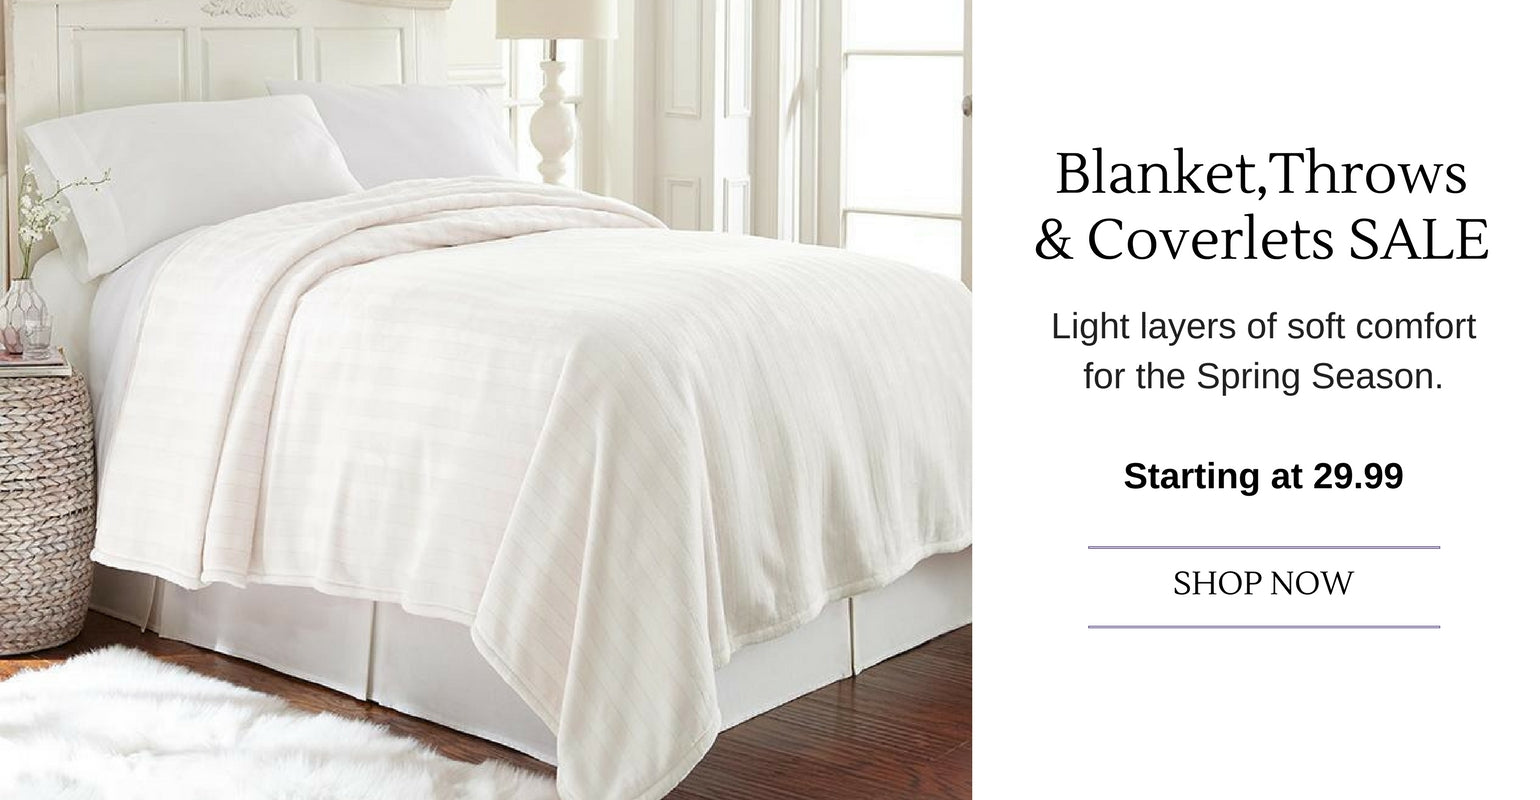 blankets, throws and coverlets